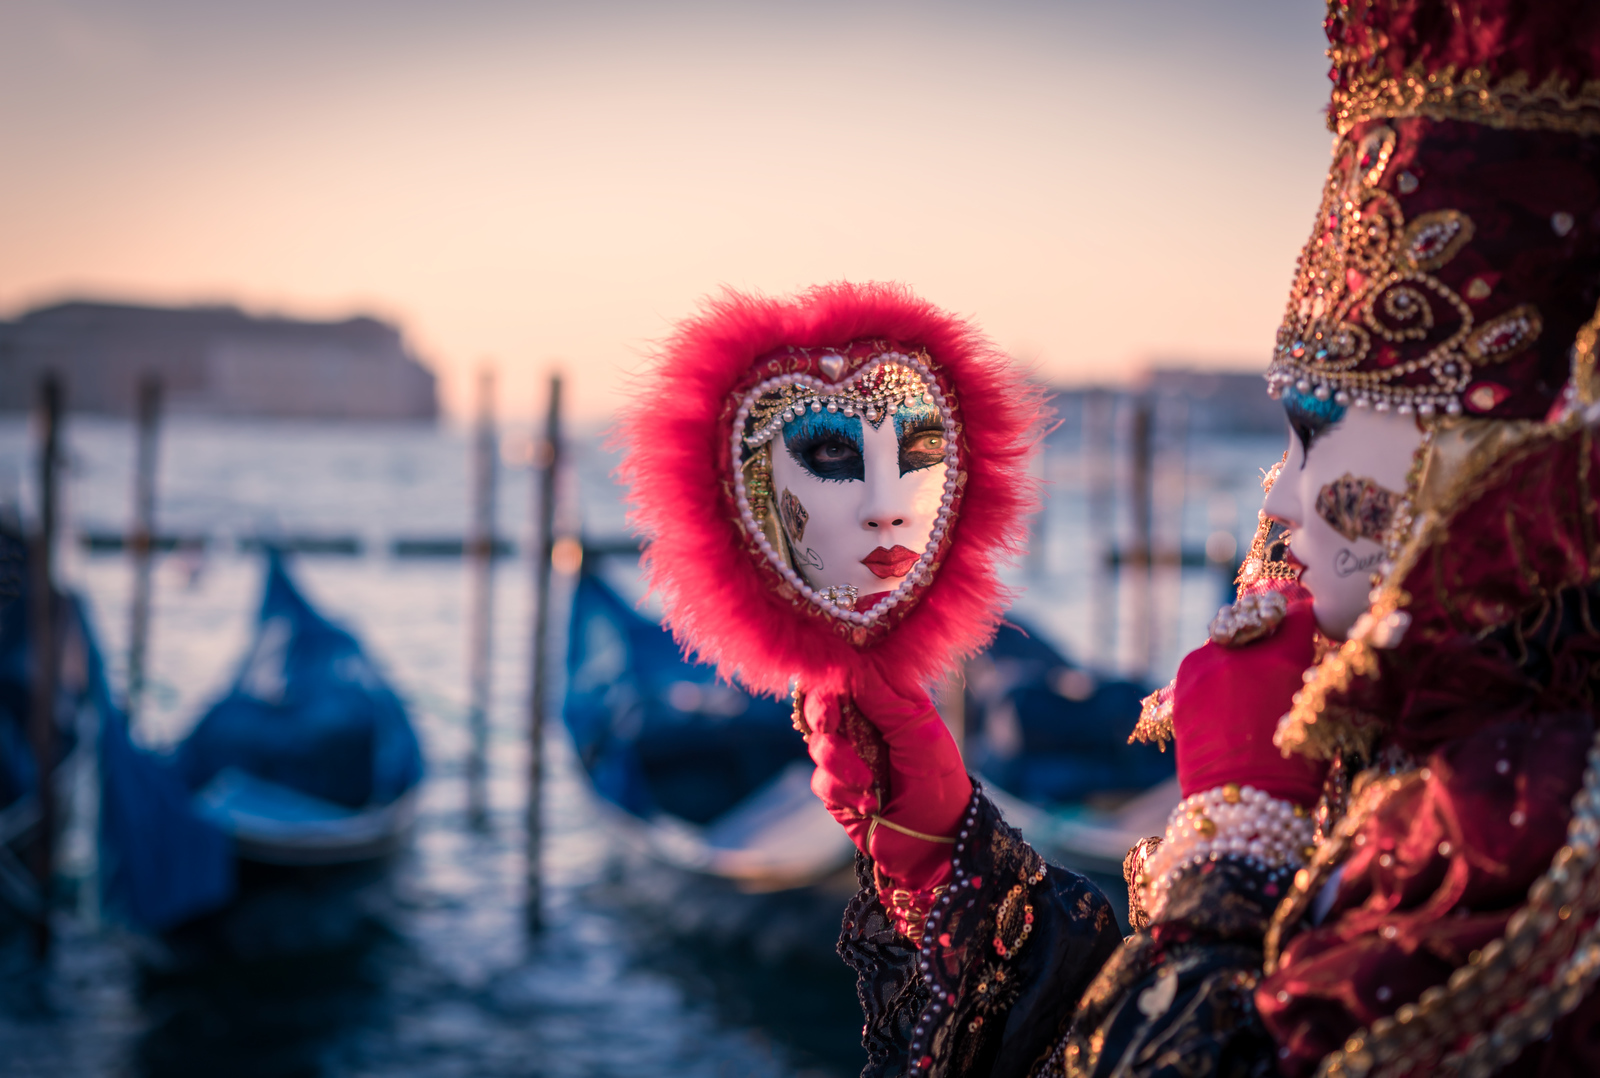 Carnival,Venice,Travel,Explore,Photography